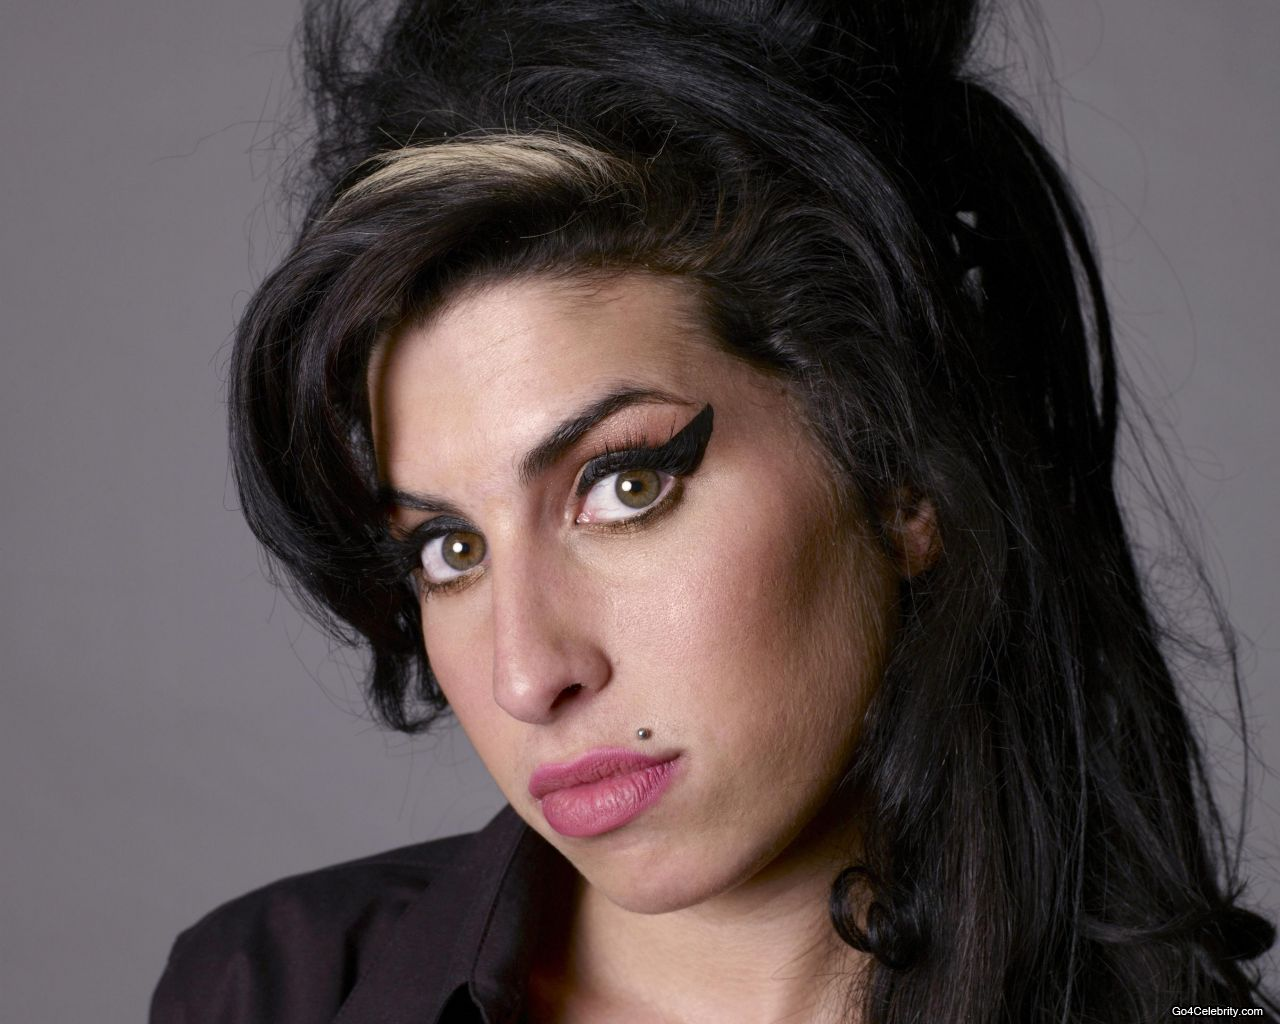 Amy Winehouse Spent Her Last Night Watching Videos Of Herself